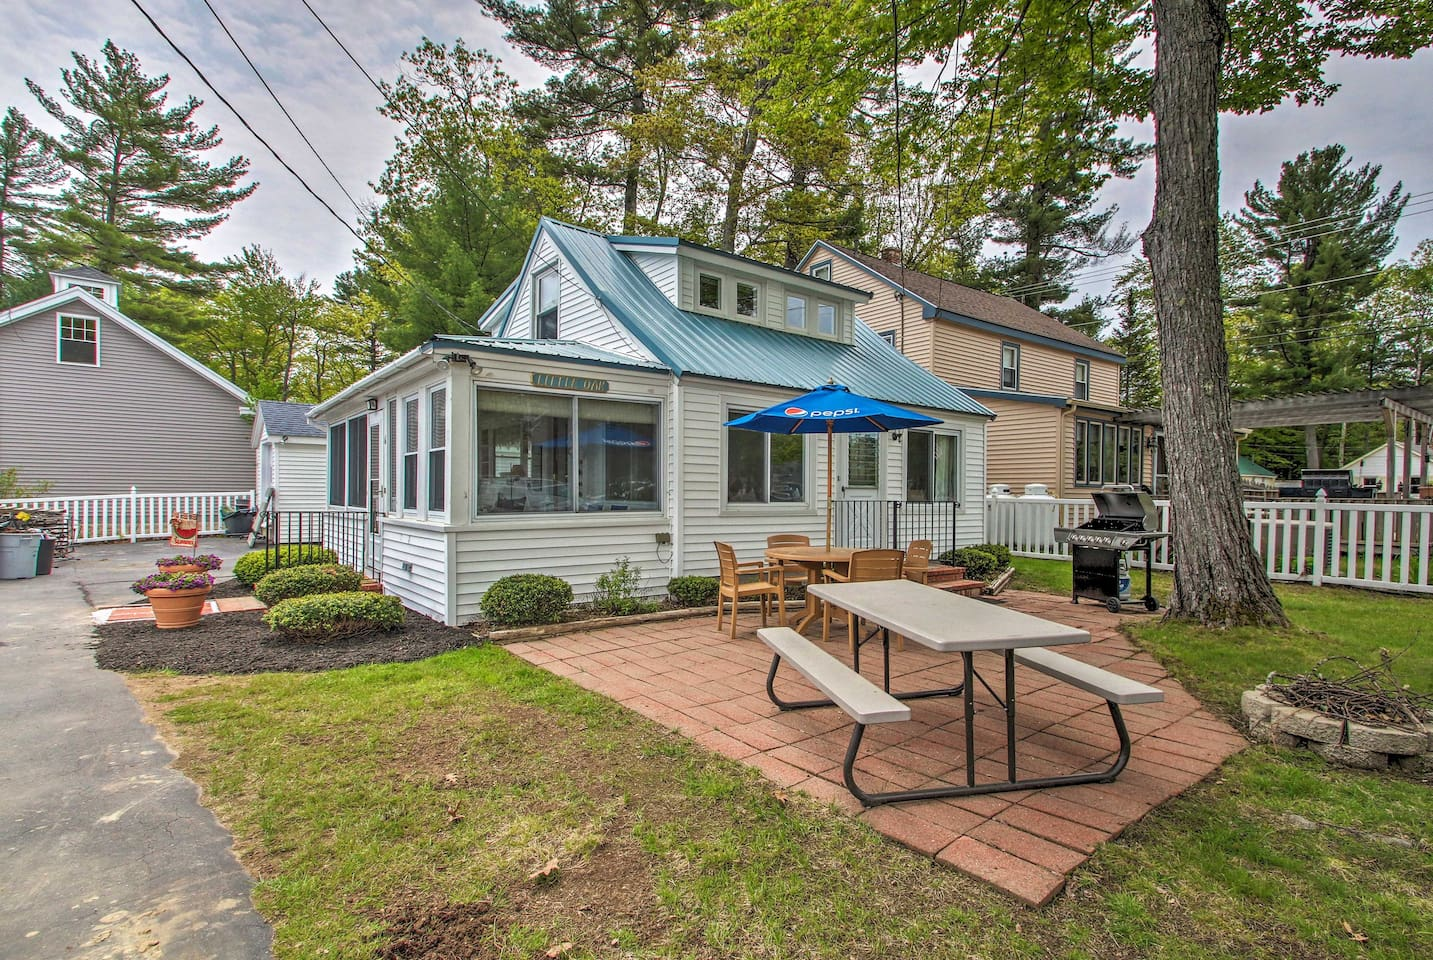 Lounge lakeside at this 2-bedroom, 1-bath cottage.